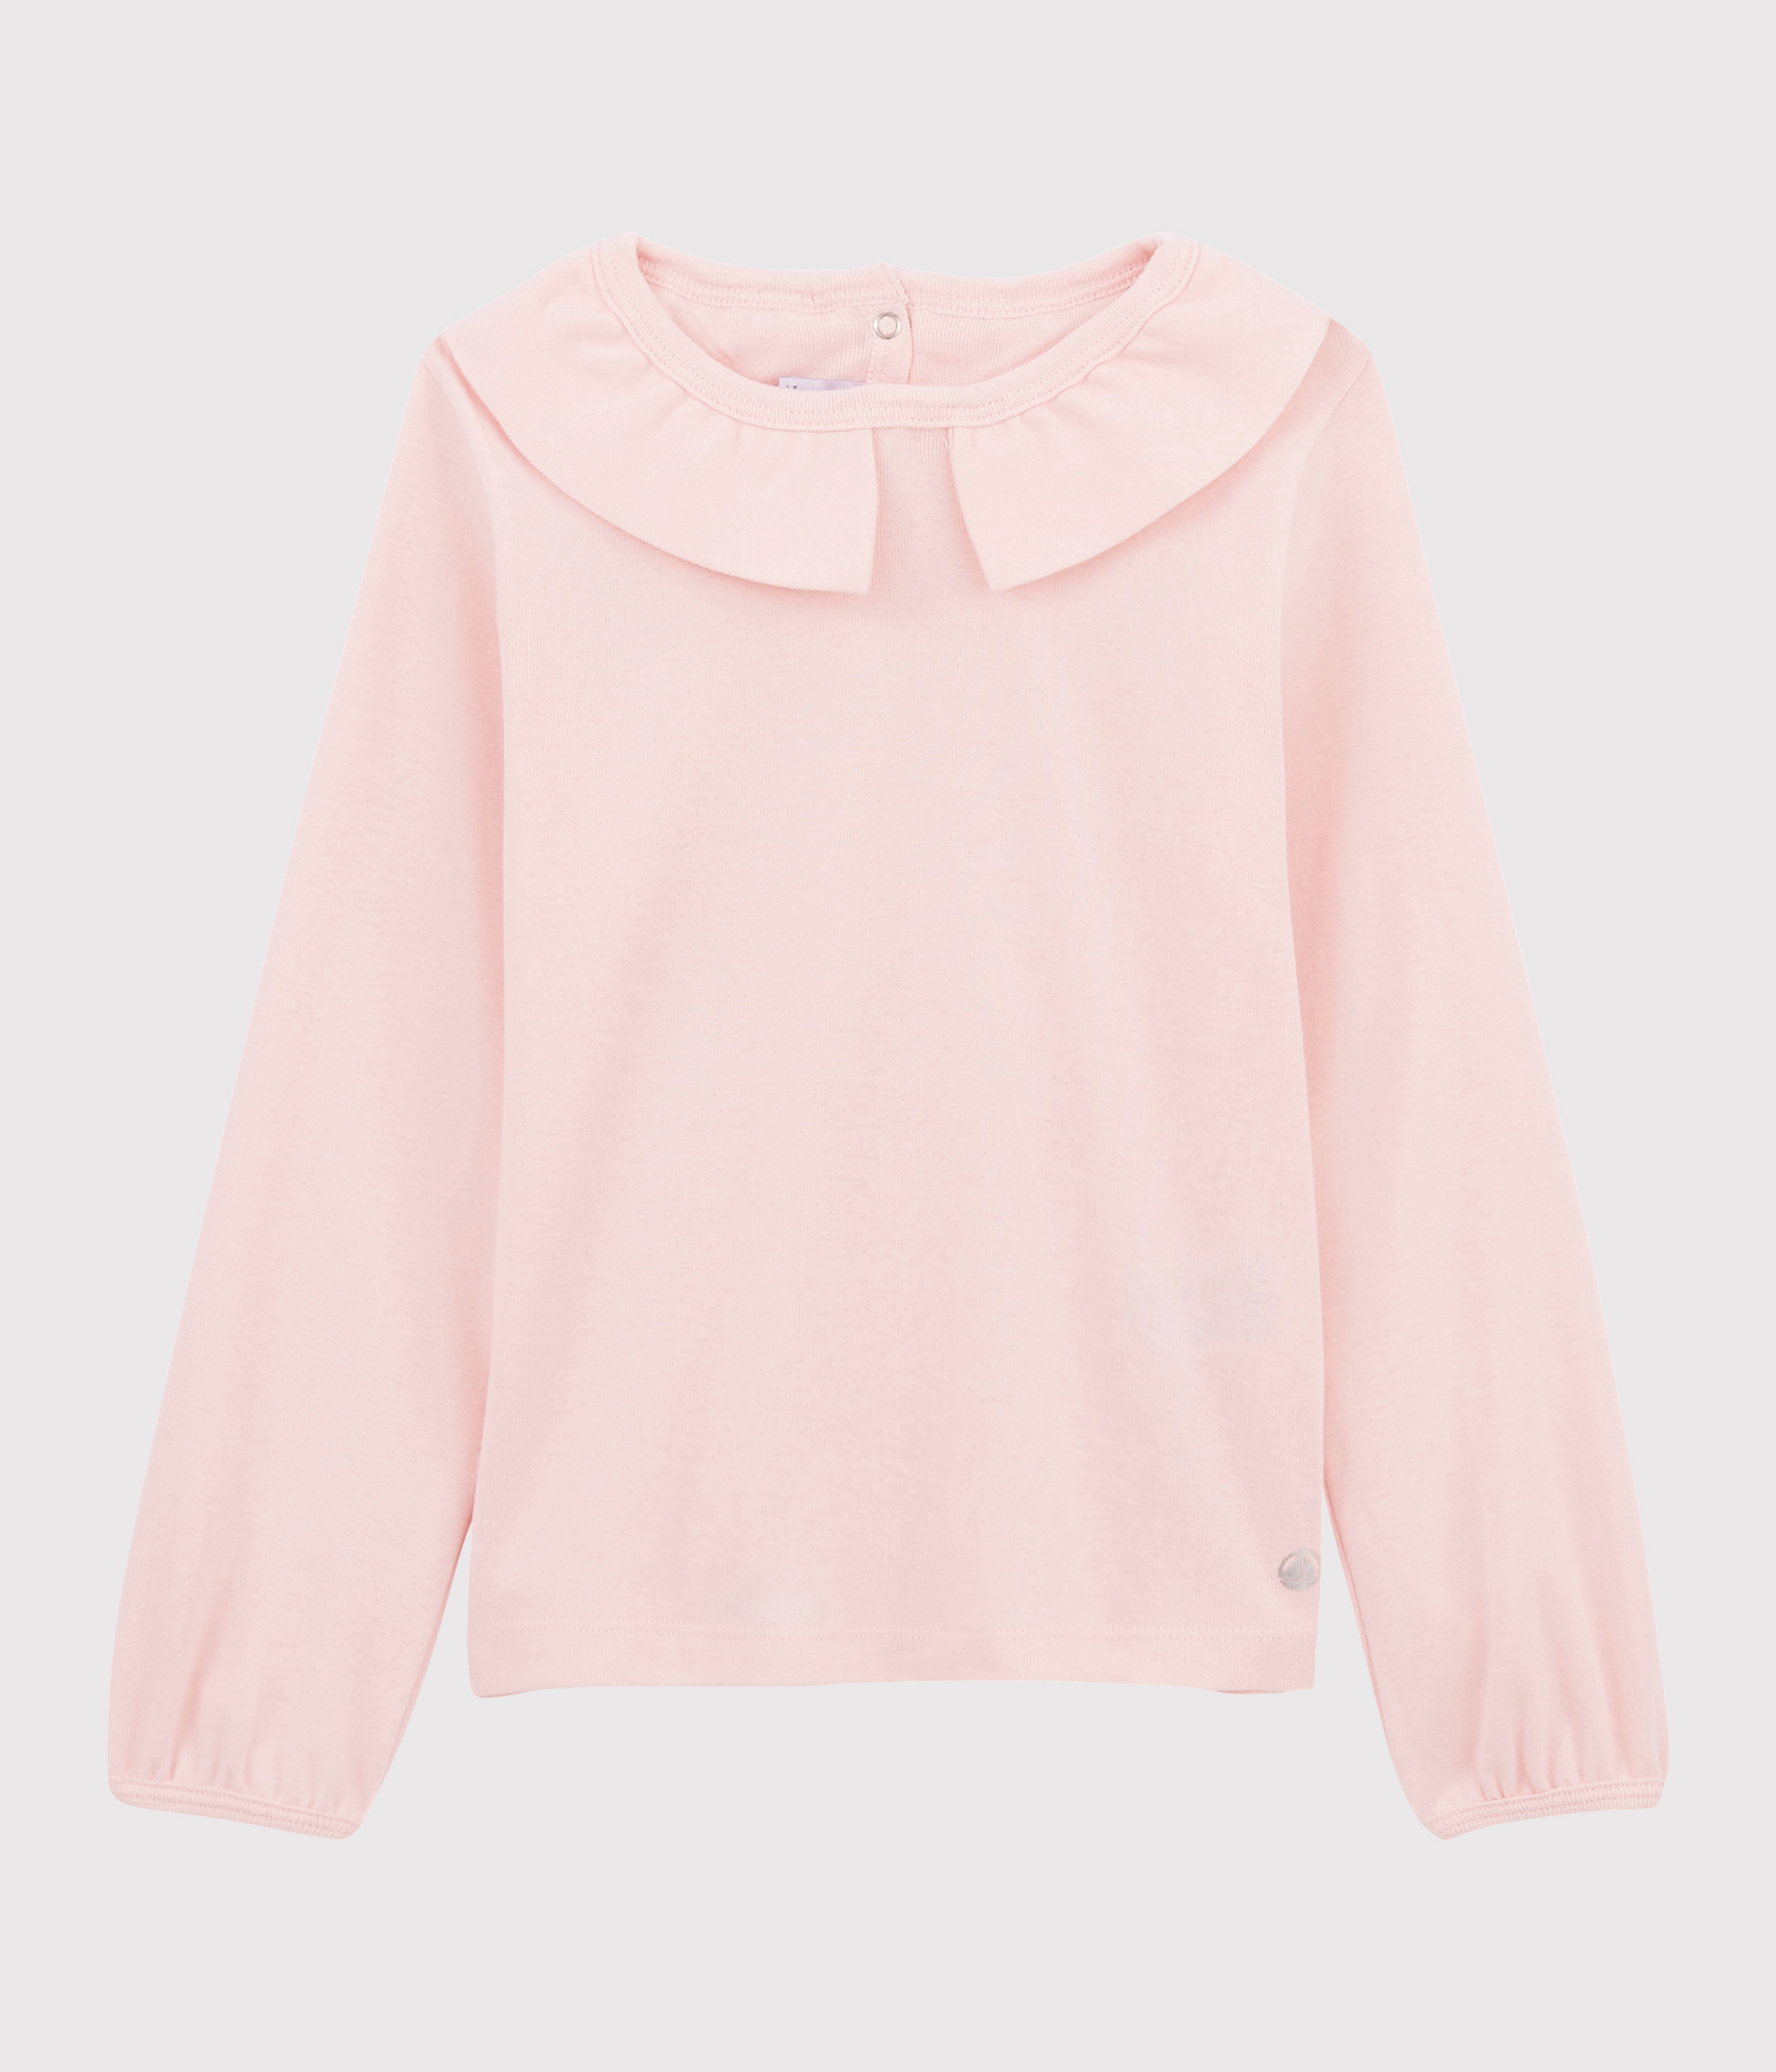 Girls' Collared T-shirt